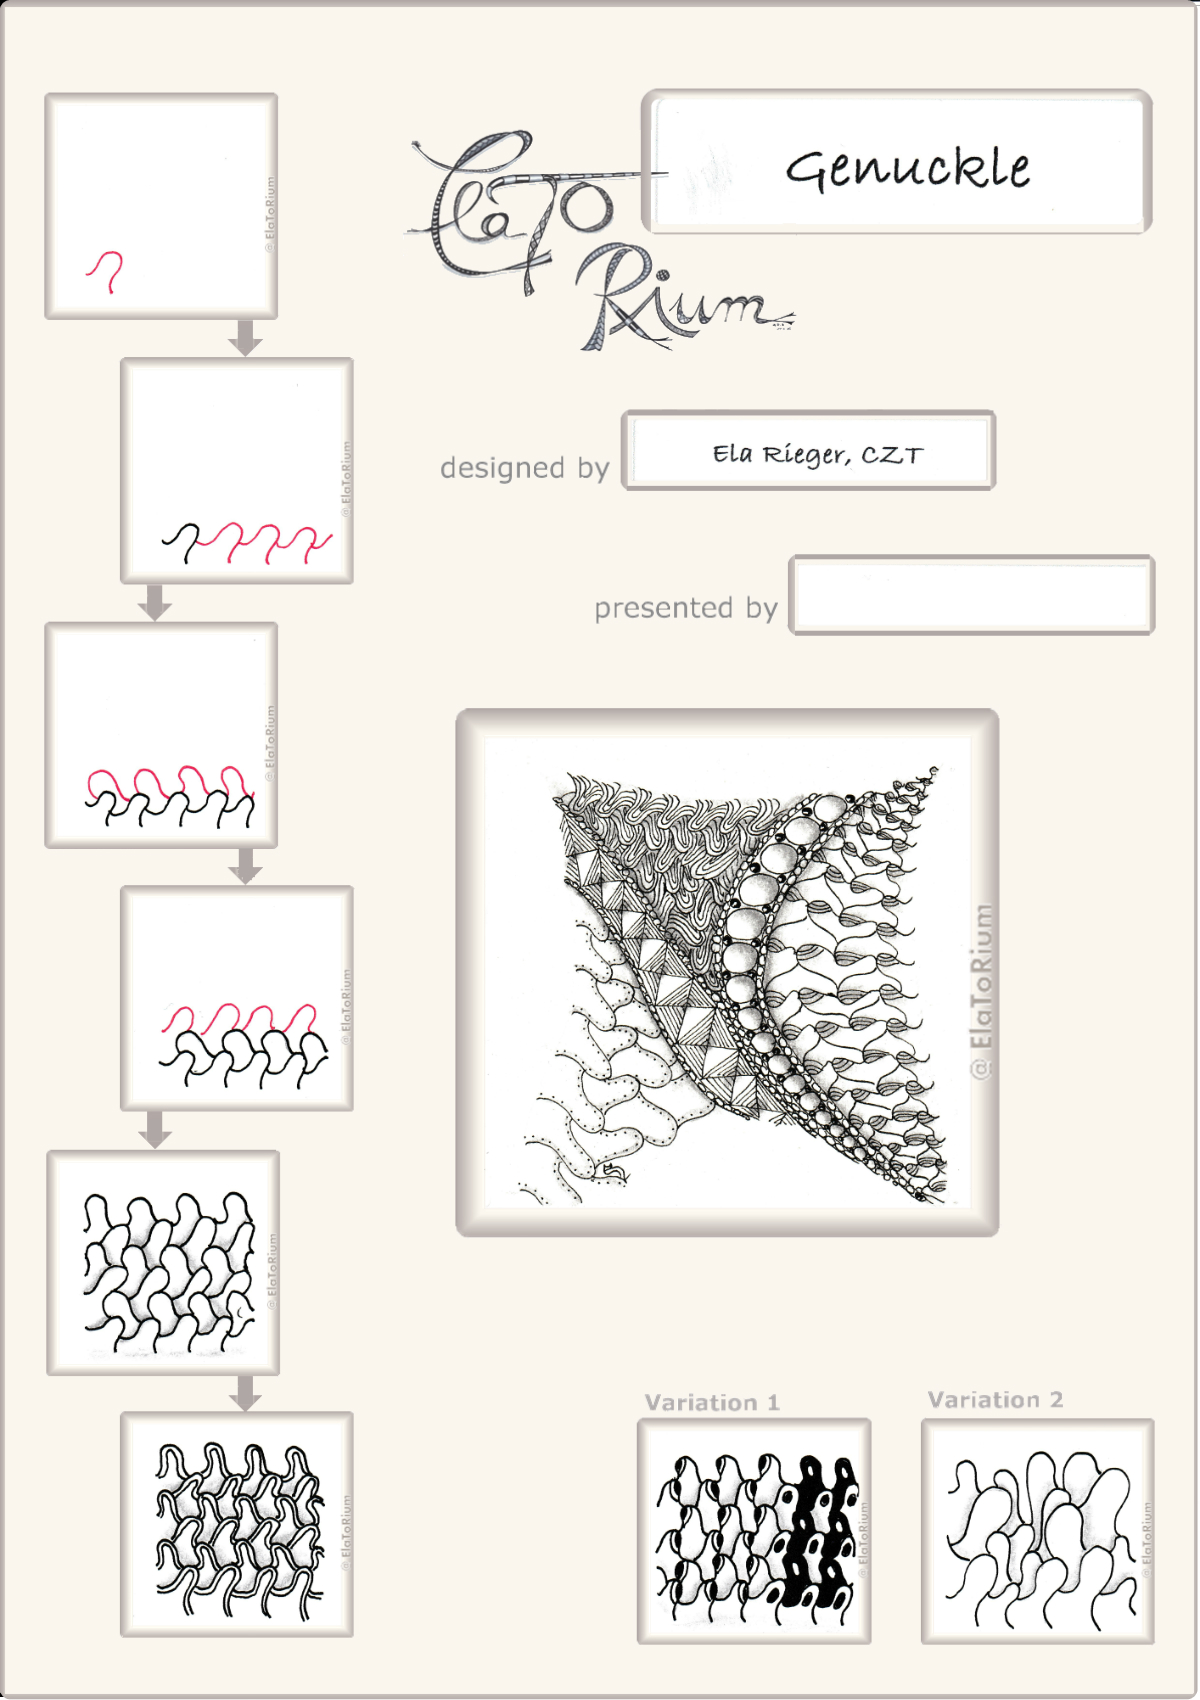 Zentangle-Pattern 'Genuckle' designed by Ela Rieger CZT, presented by www.ElaToRium.de